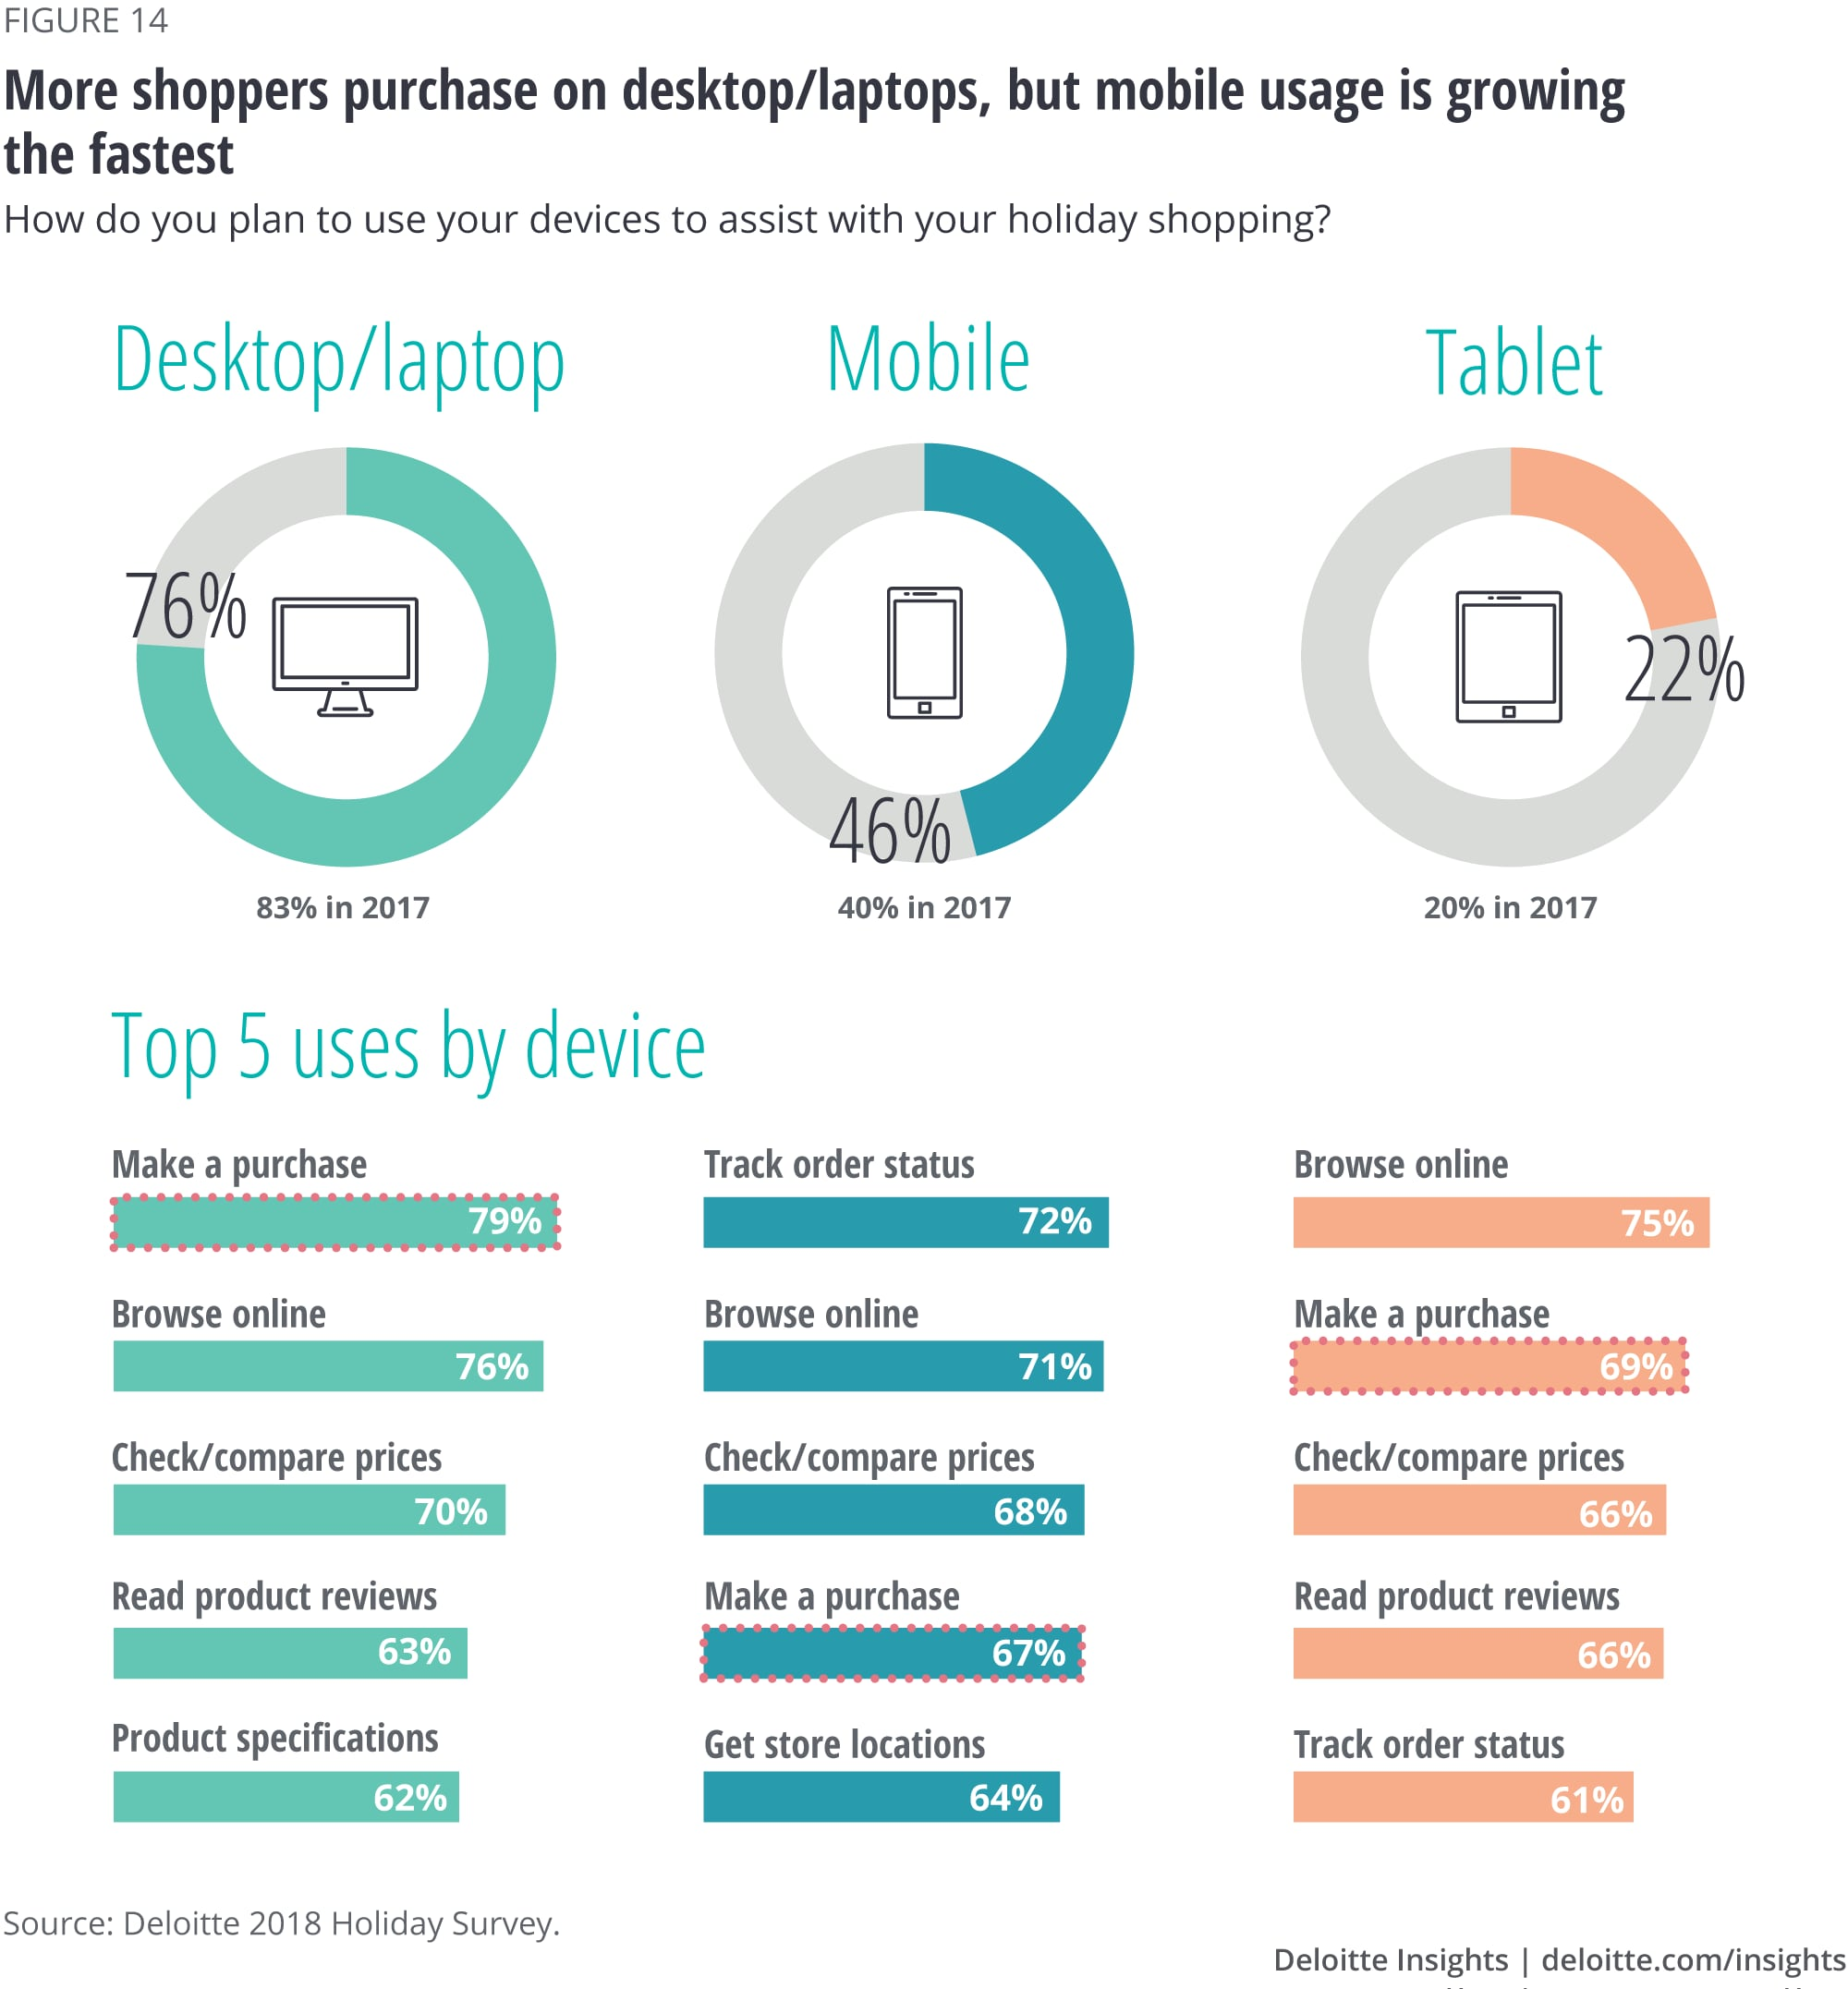 More shoppers purchase on desktop/laptops, but mobile usage is growing the fastest